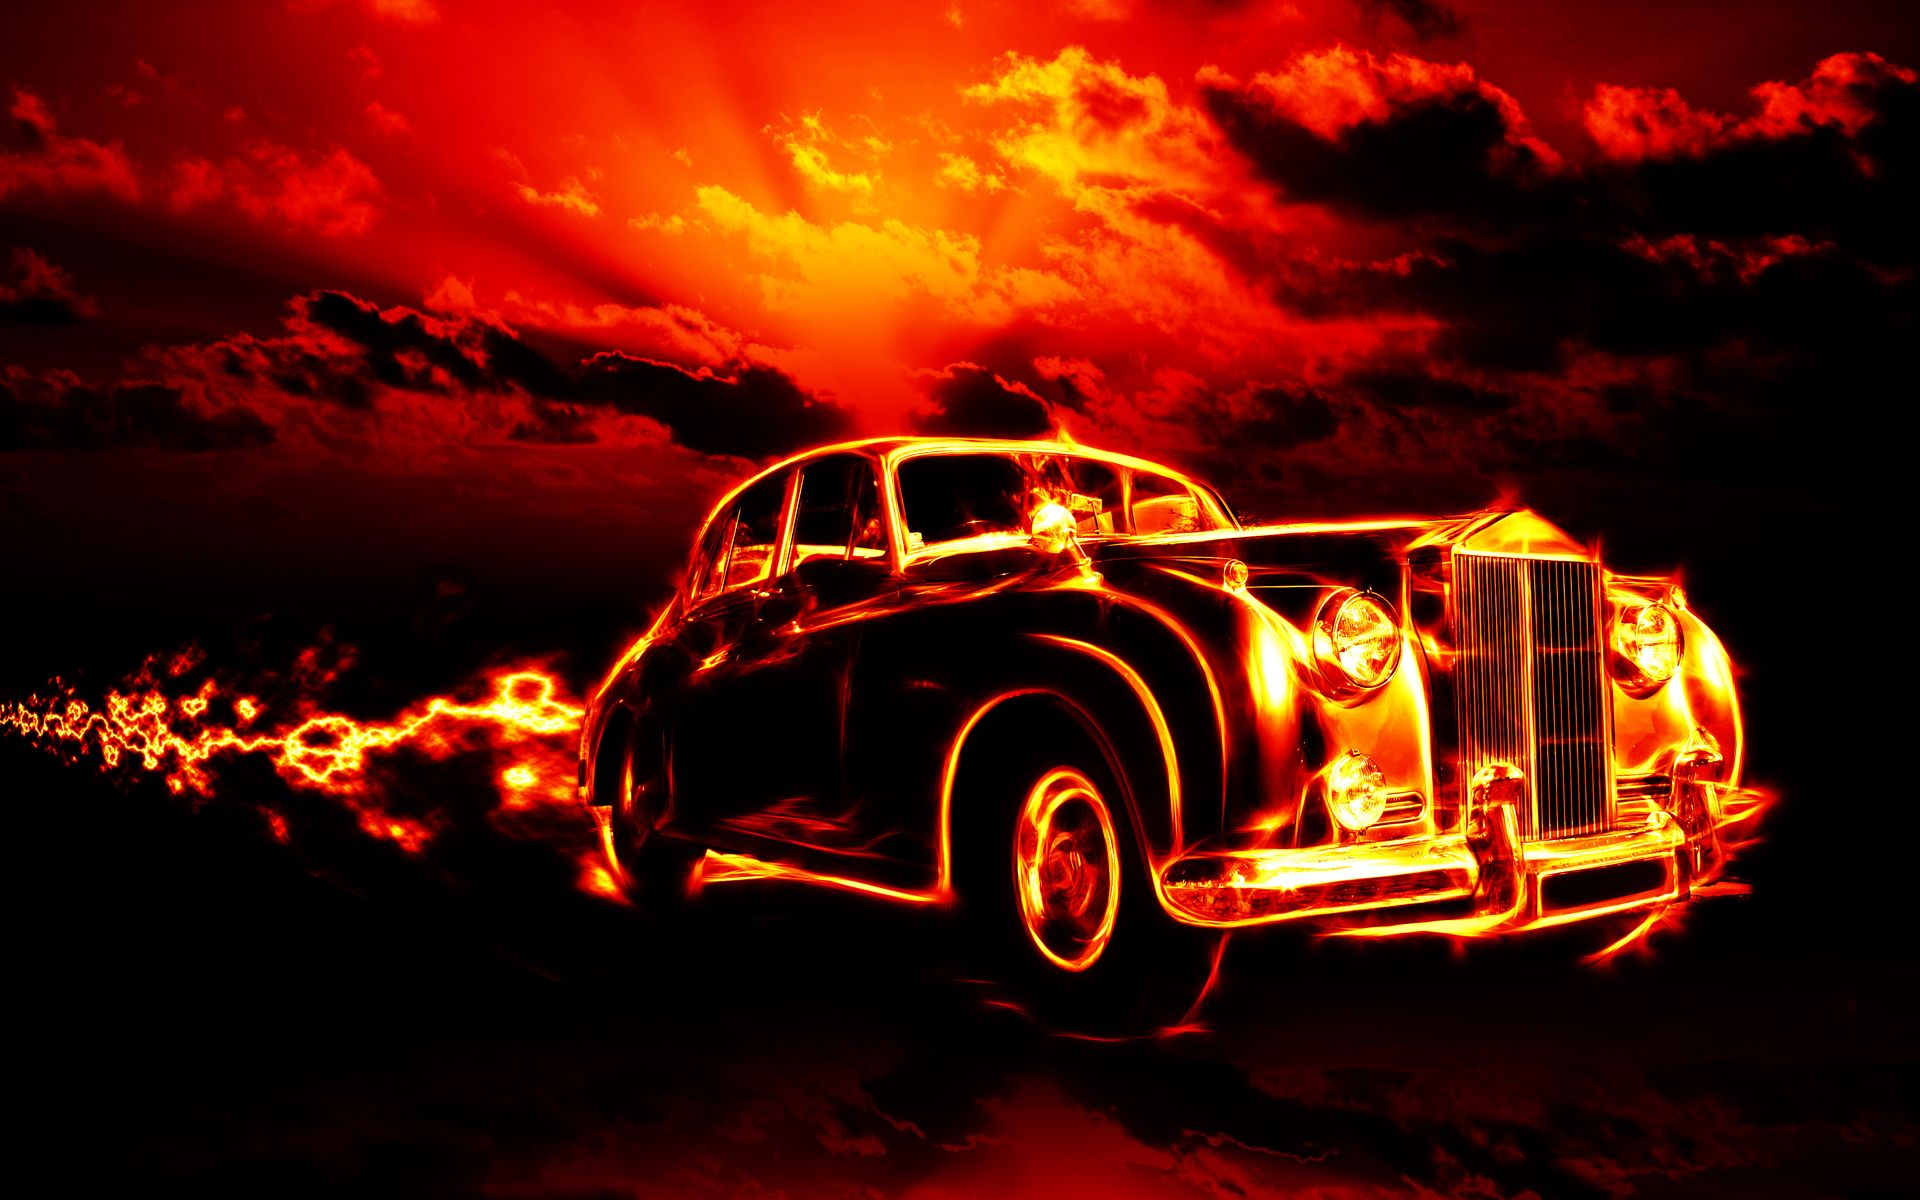 cool pics of fire amazing fire car wallpaper download free fire car hd